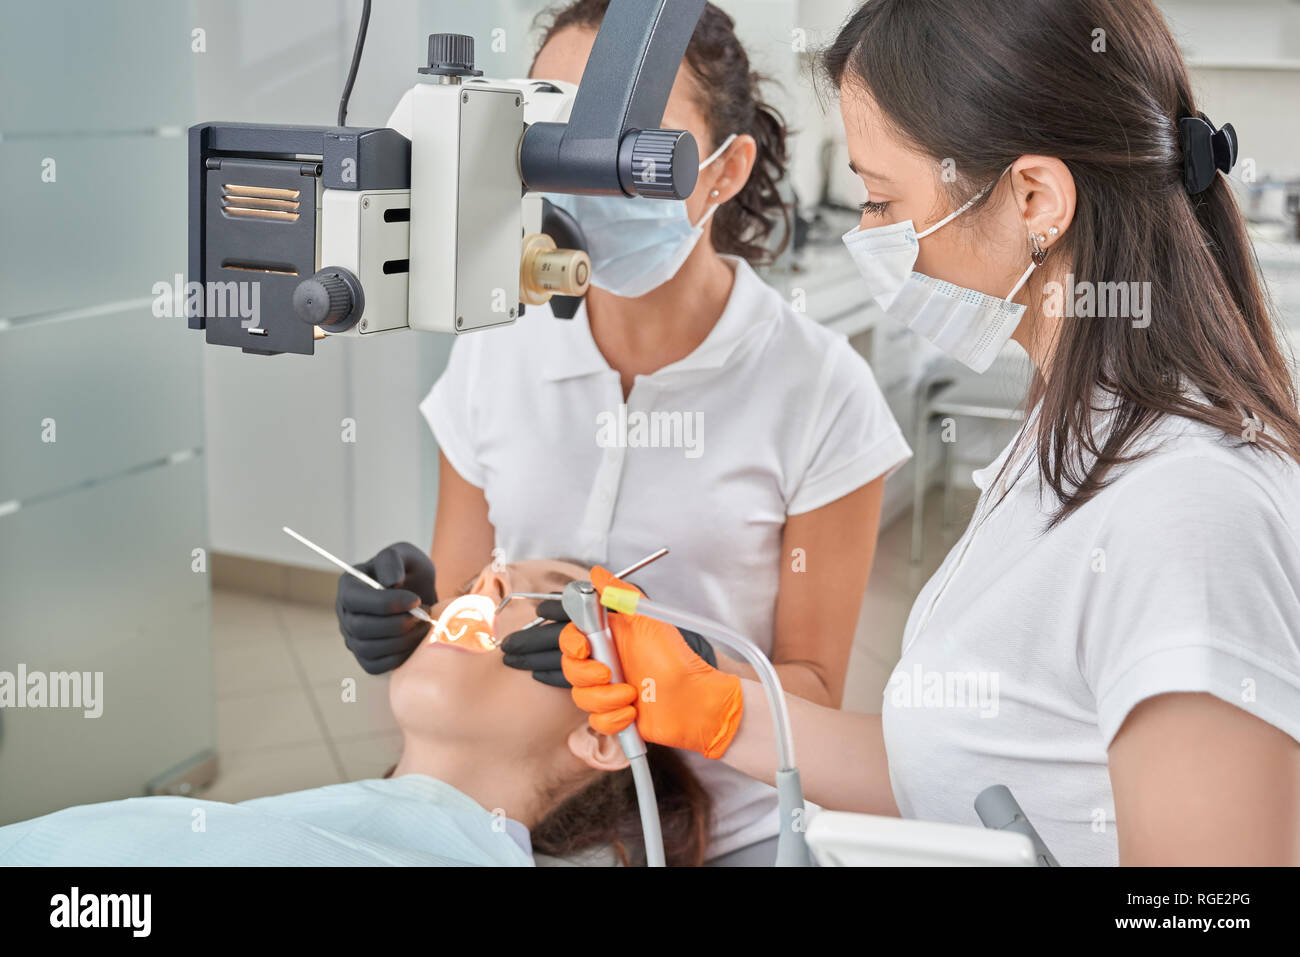 Female patient lying on dental chair while professional dentist treating teeth. Experienced doctor working with modern equipment and assistant helping. Concept of stomatology and care. - Stock Image